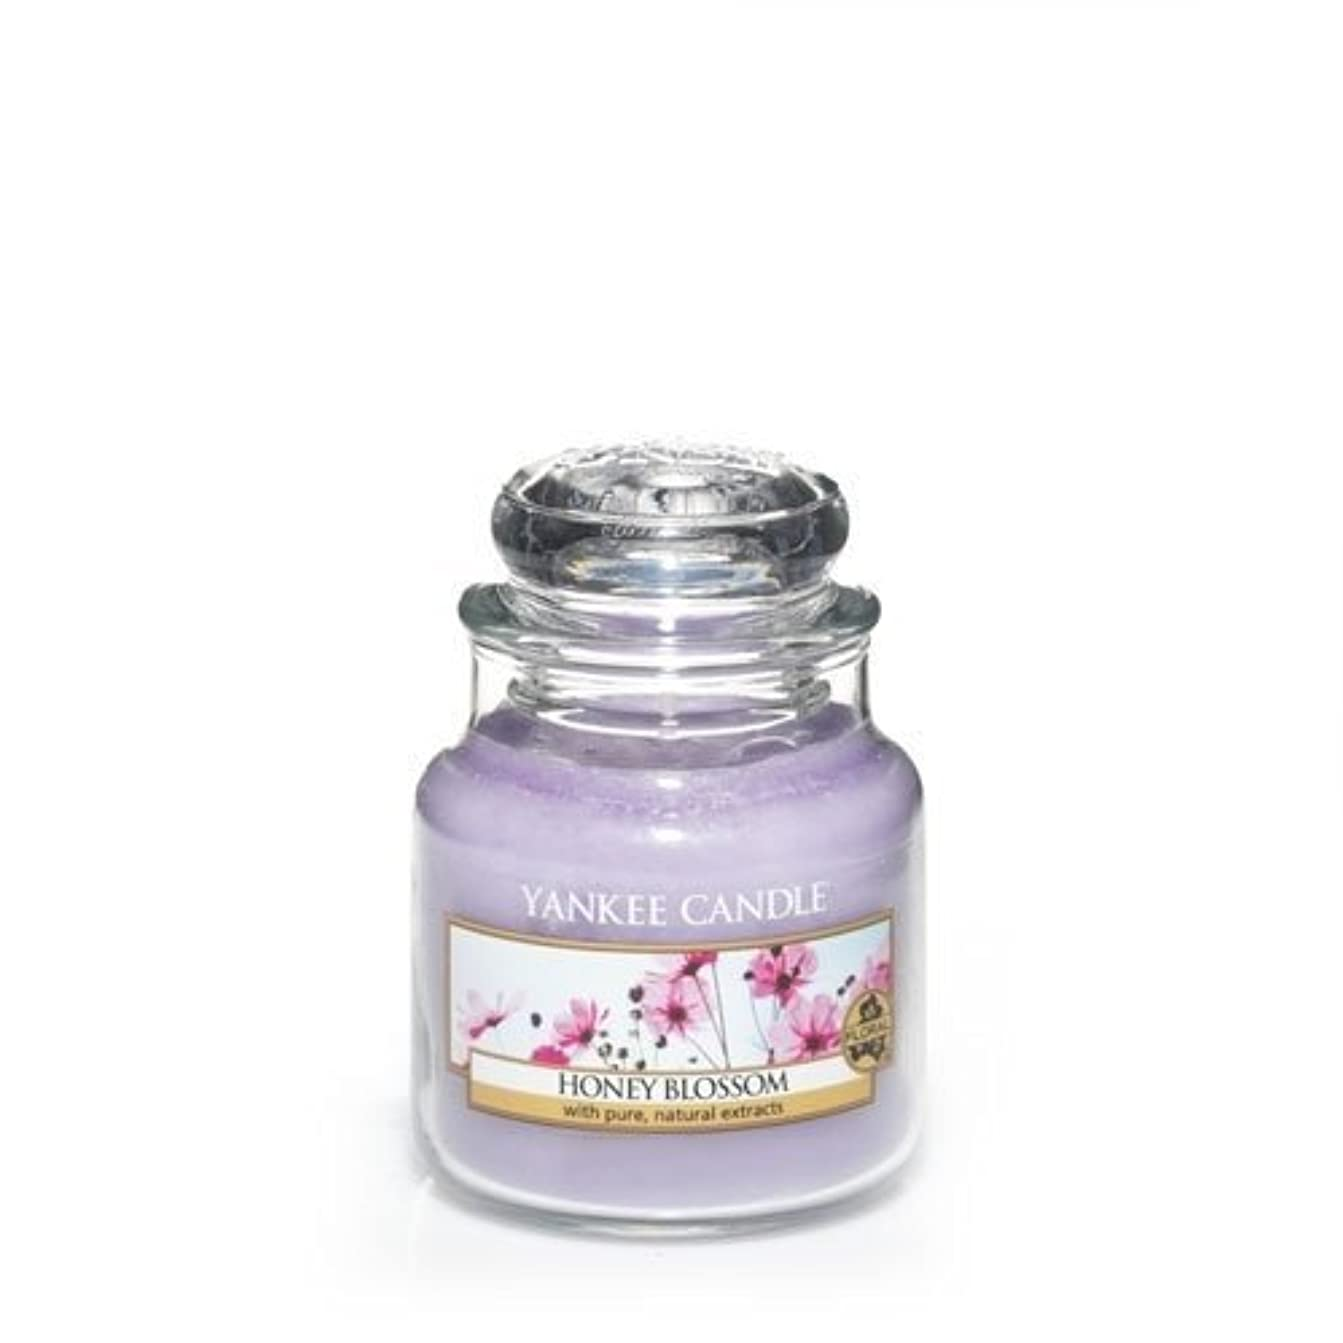 ストレッチ生きている橋脚Yankee Candle Honey Blossom Small Jar Candle, Floral Scent by Yankee Candle [並行輸入品]